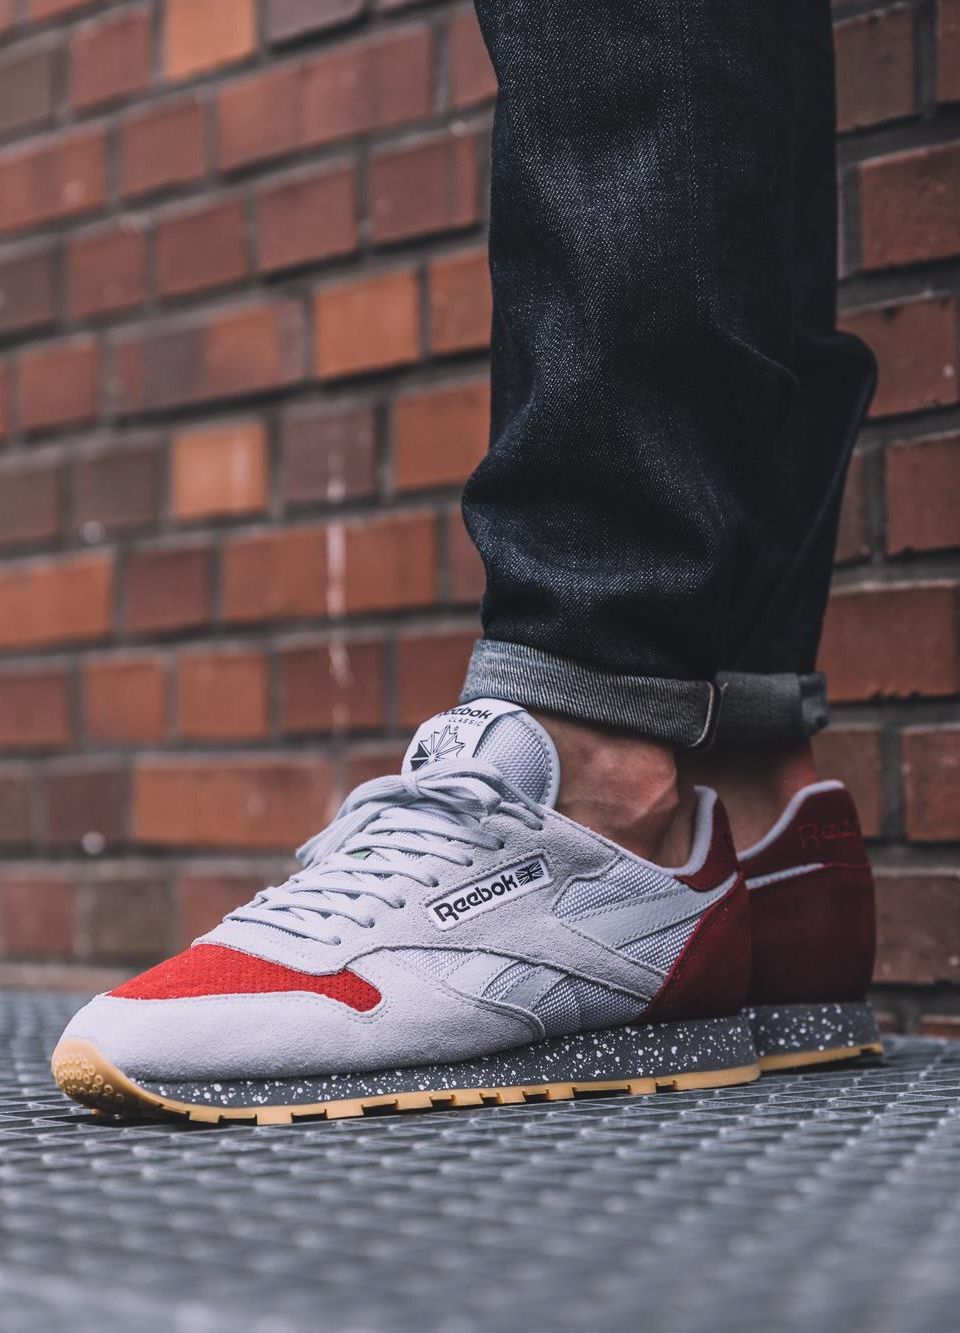 b5a764de414 Reebok Classic Leather SM  Speckle Midsole Pack  (via Kicks-daily.com)